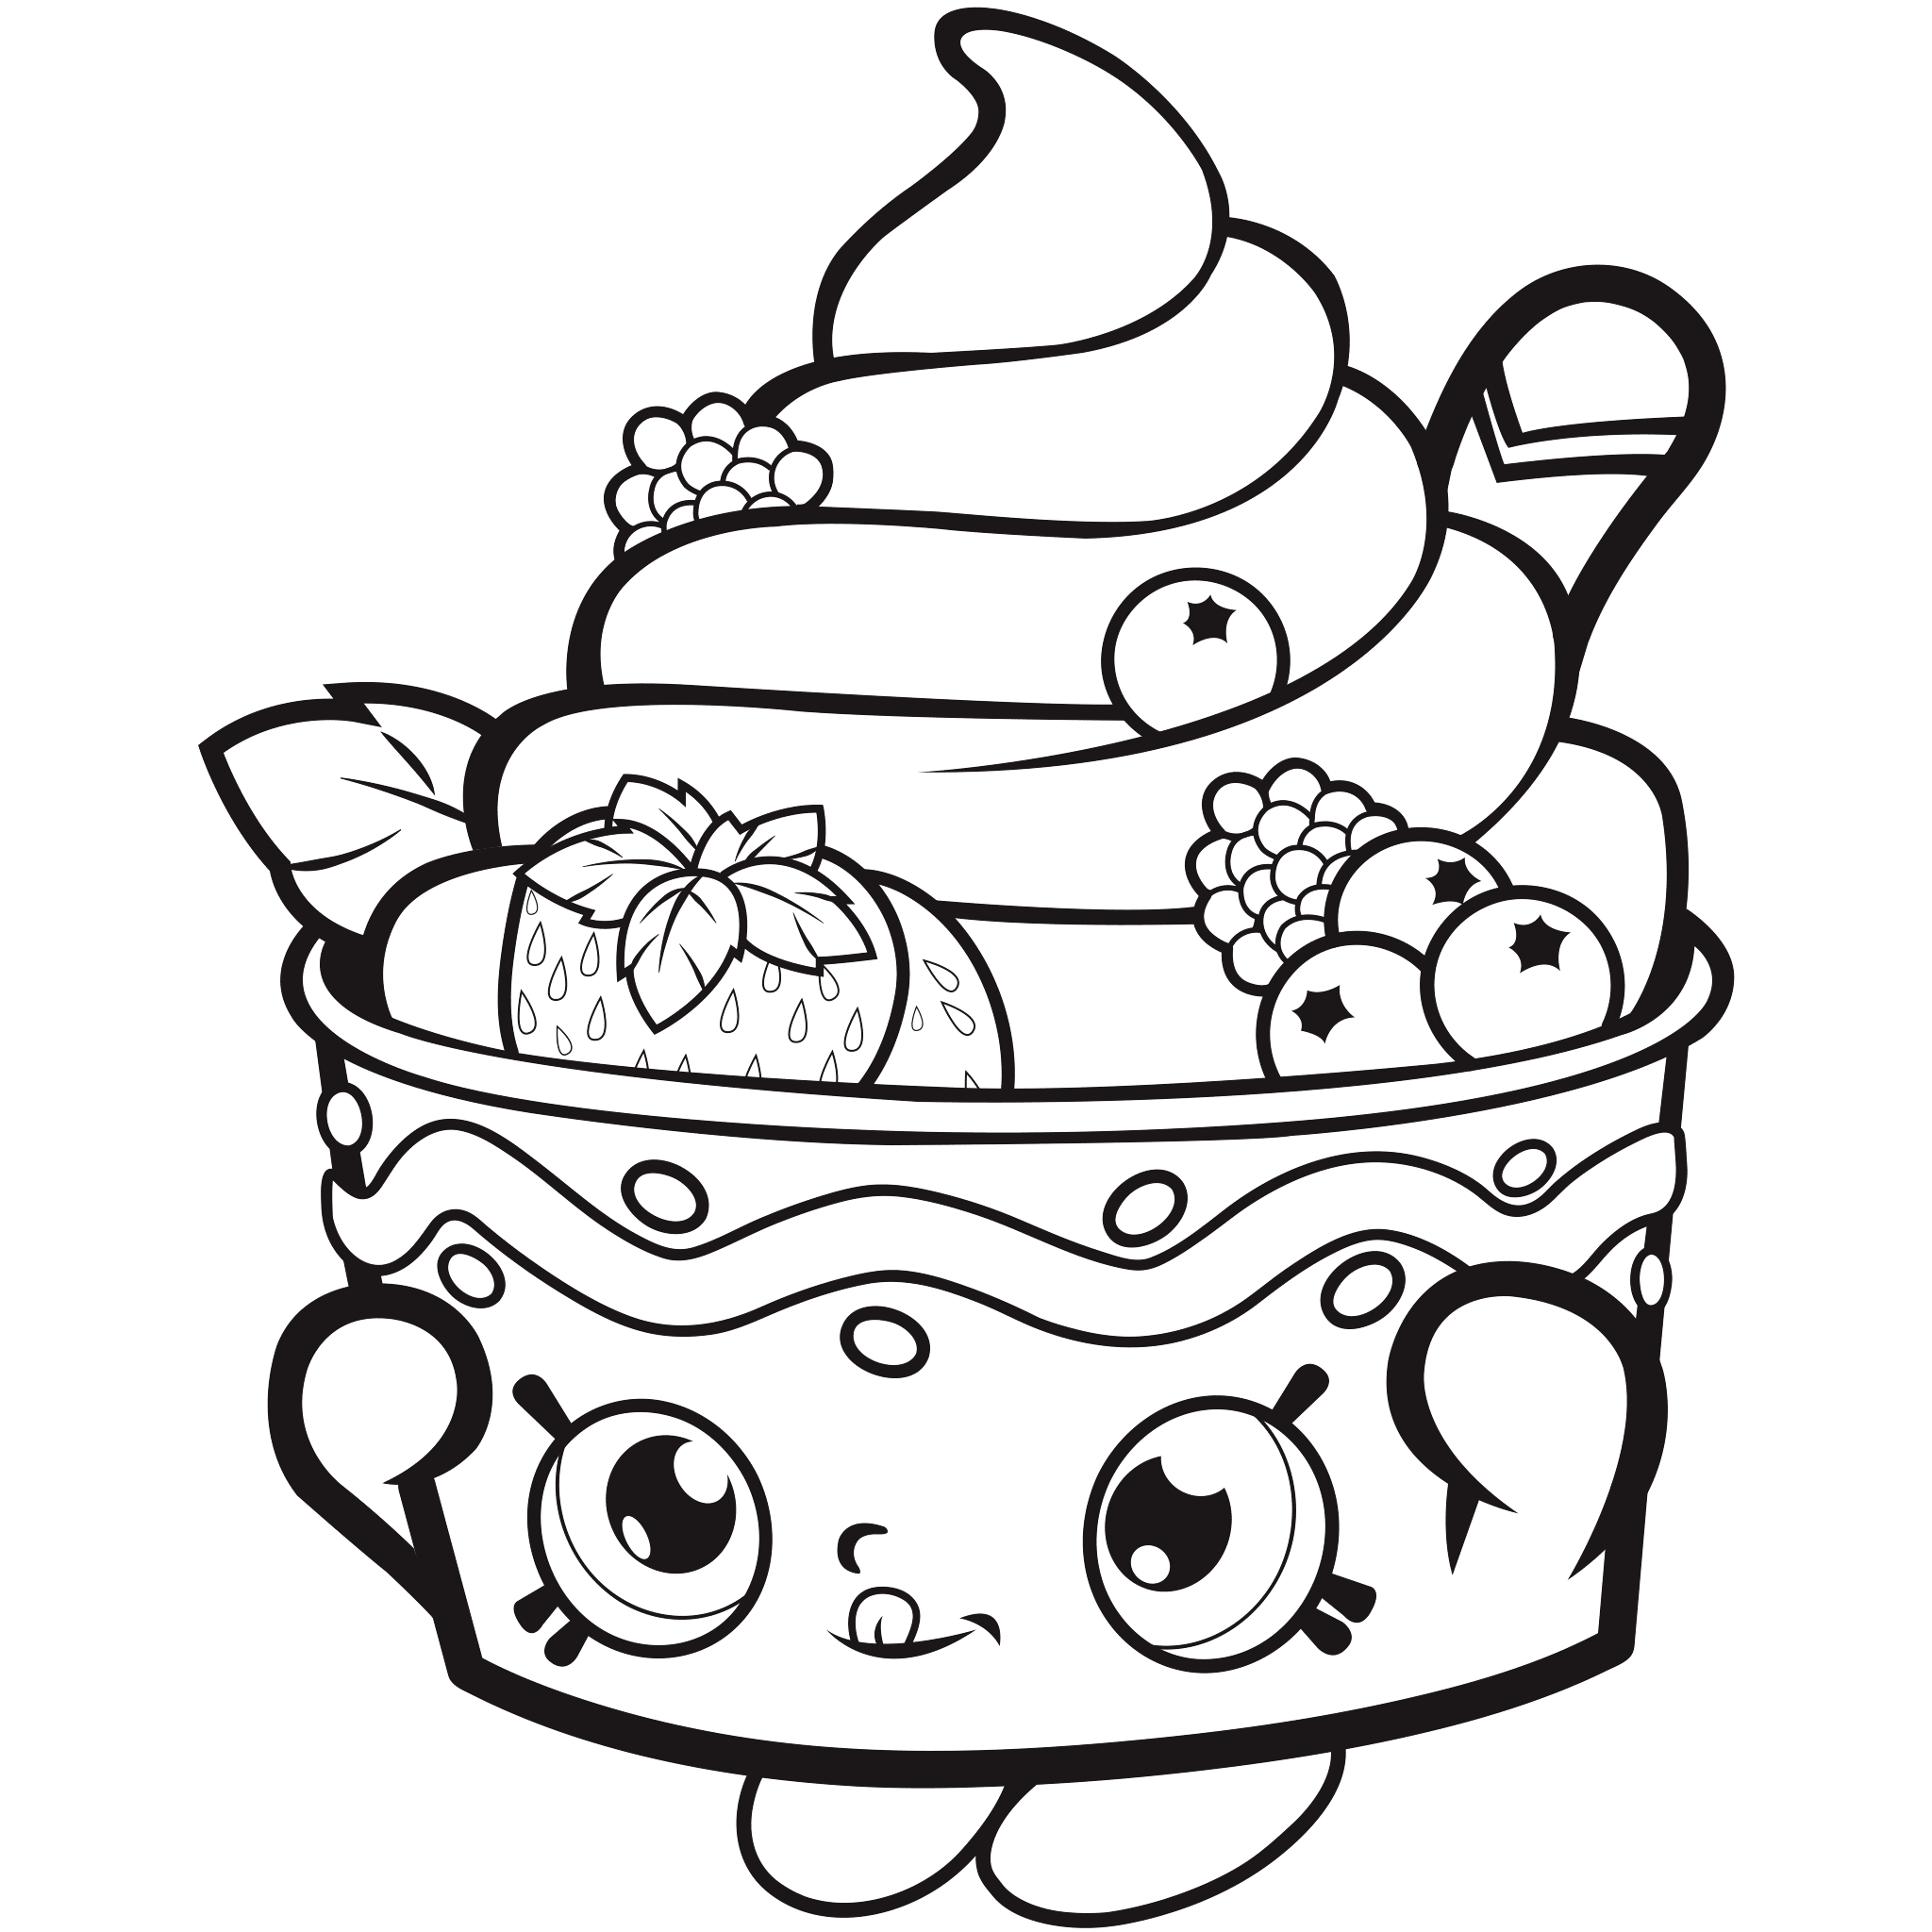 shopkins coloring pages to print free shopkins coloring pages best coloring pages for kids pages coloring to shopkins free print